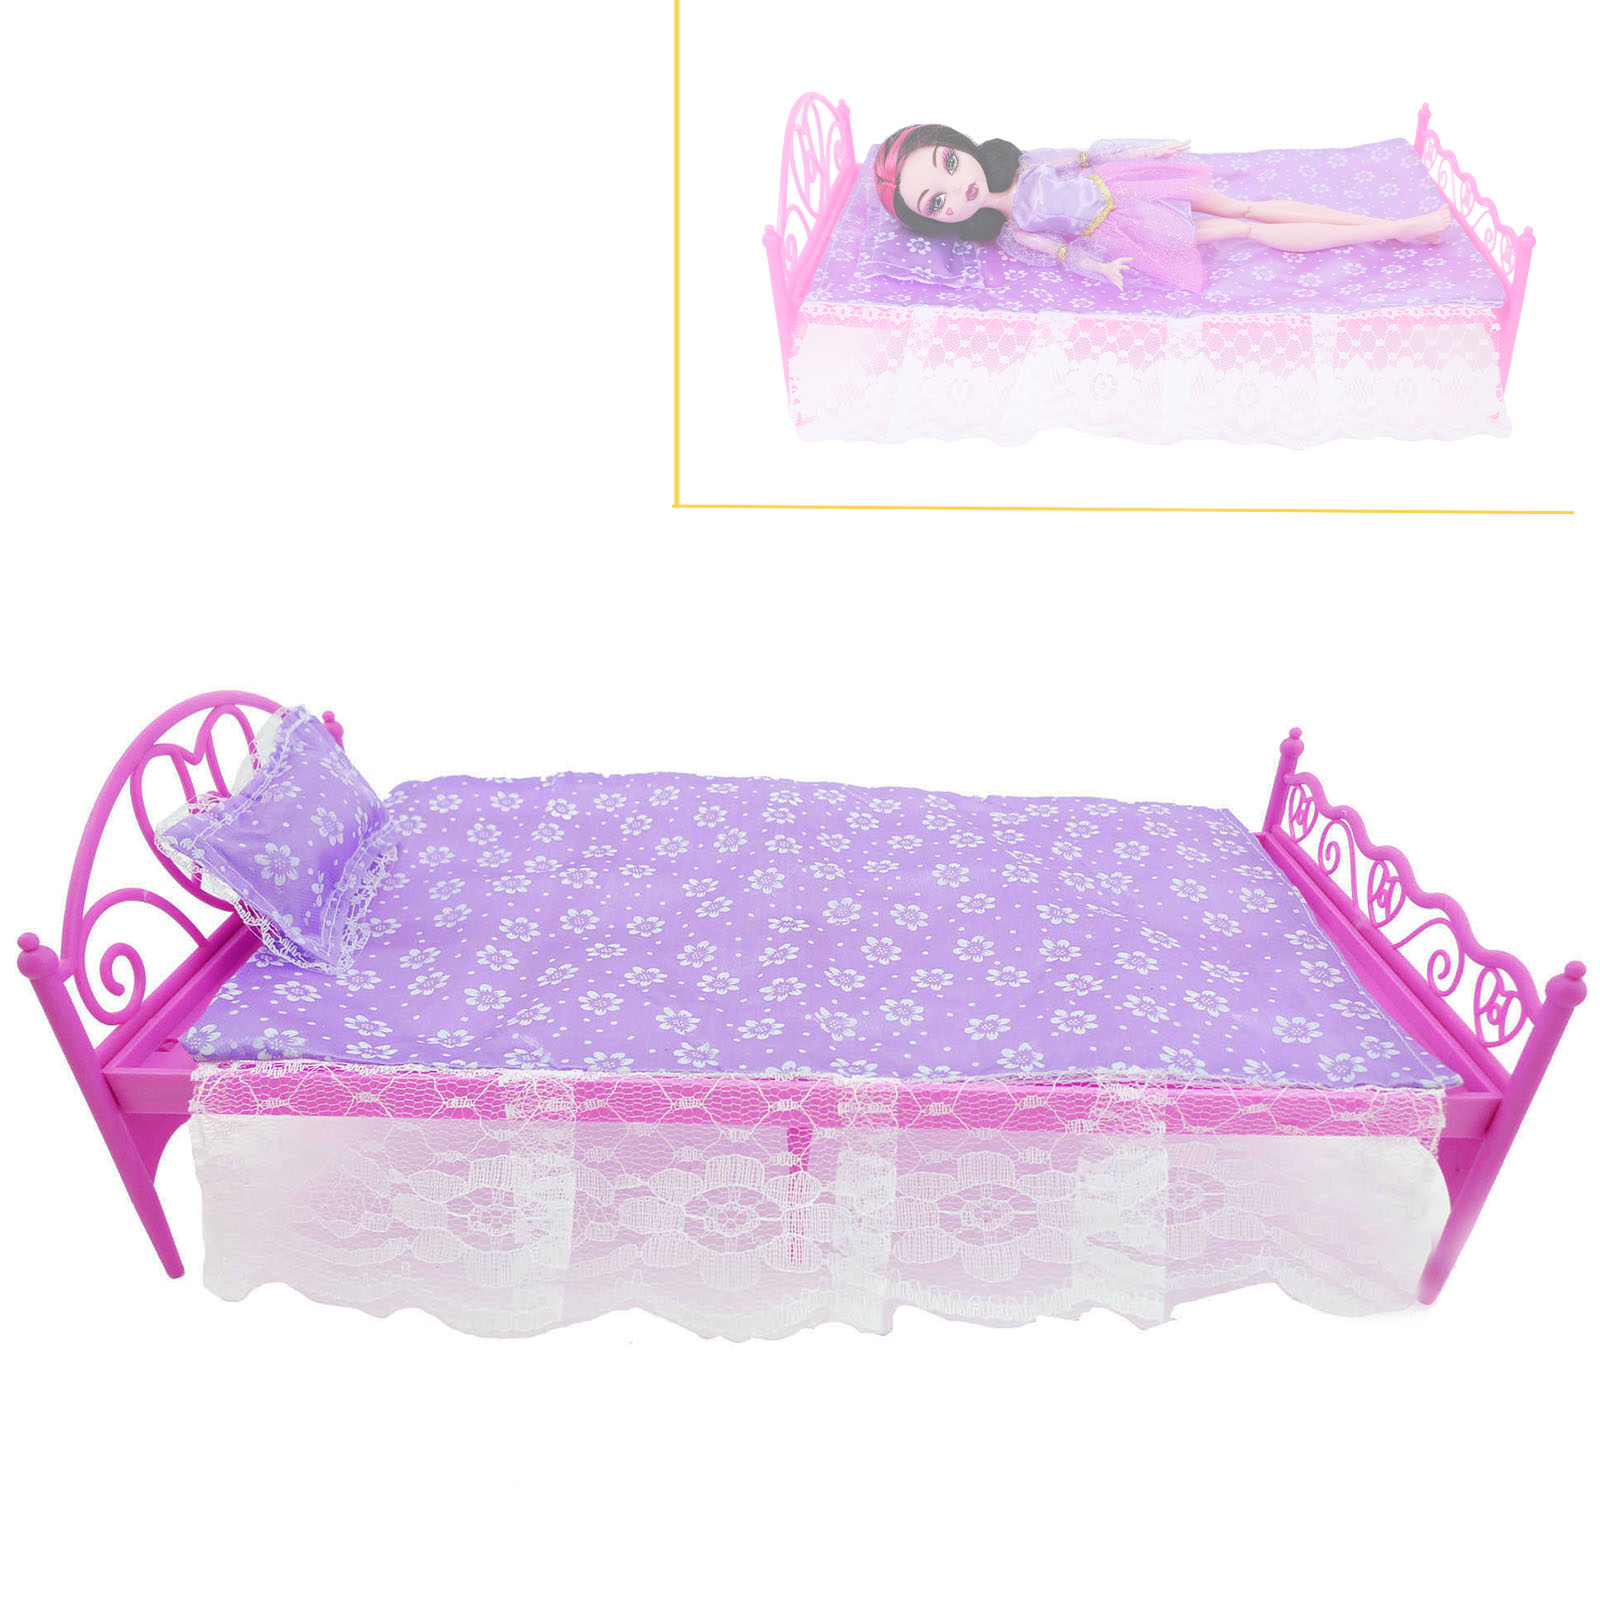 Fashion Purple Doll's Bedroom Sets Dollhouse Bed Pillow Bedsheet Furniture Accessories For Barbie Doll Clothes Play House Toy